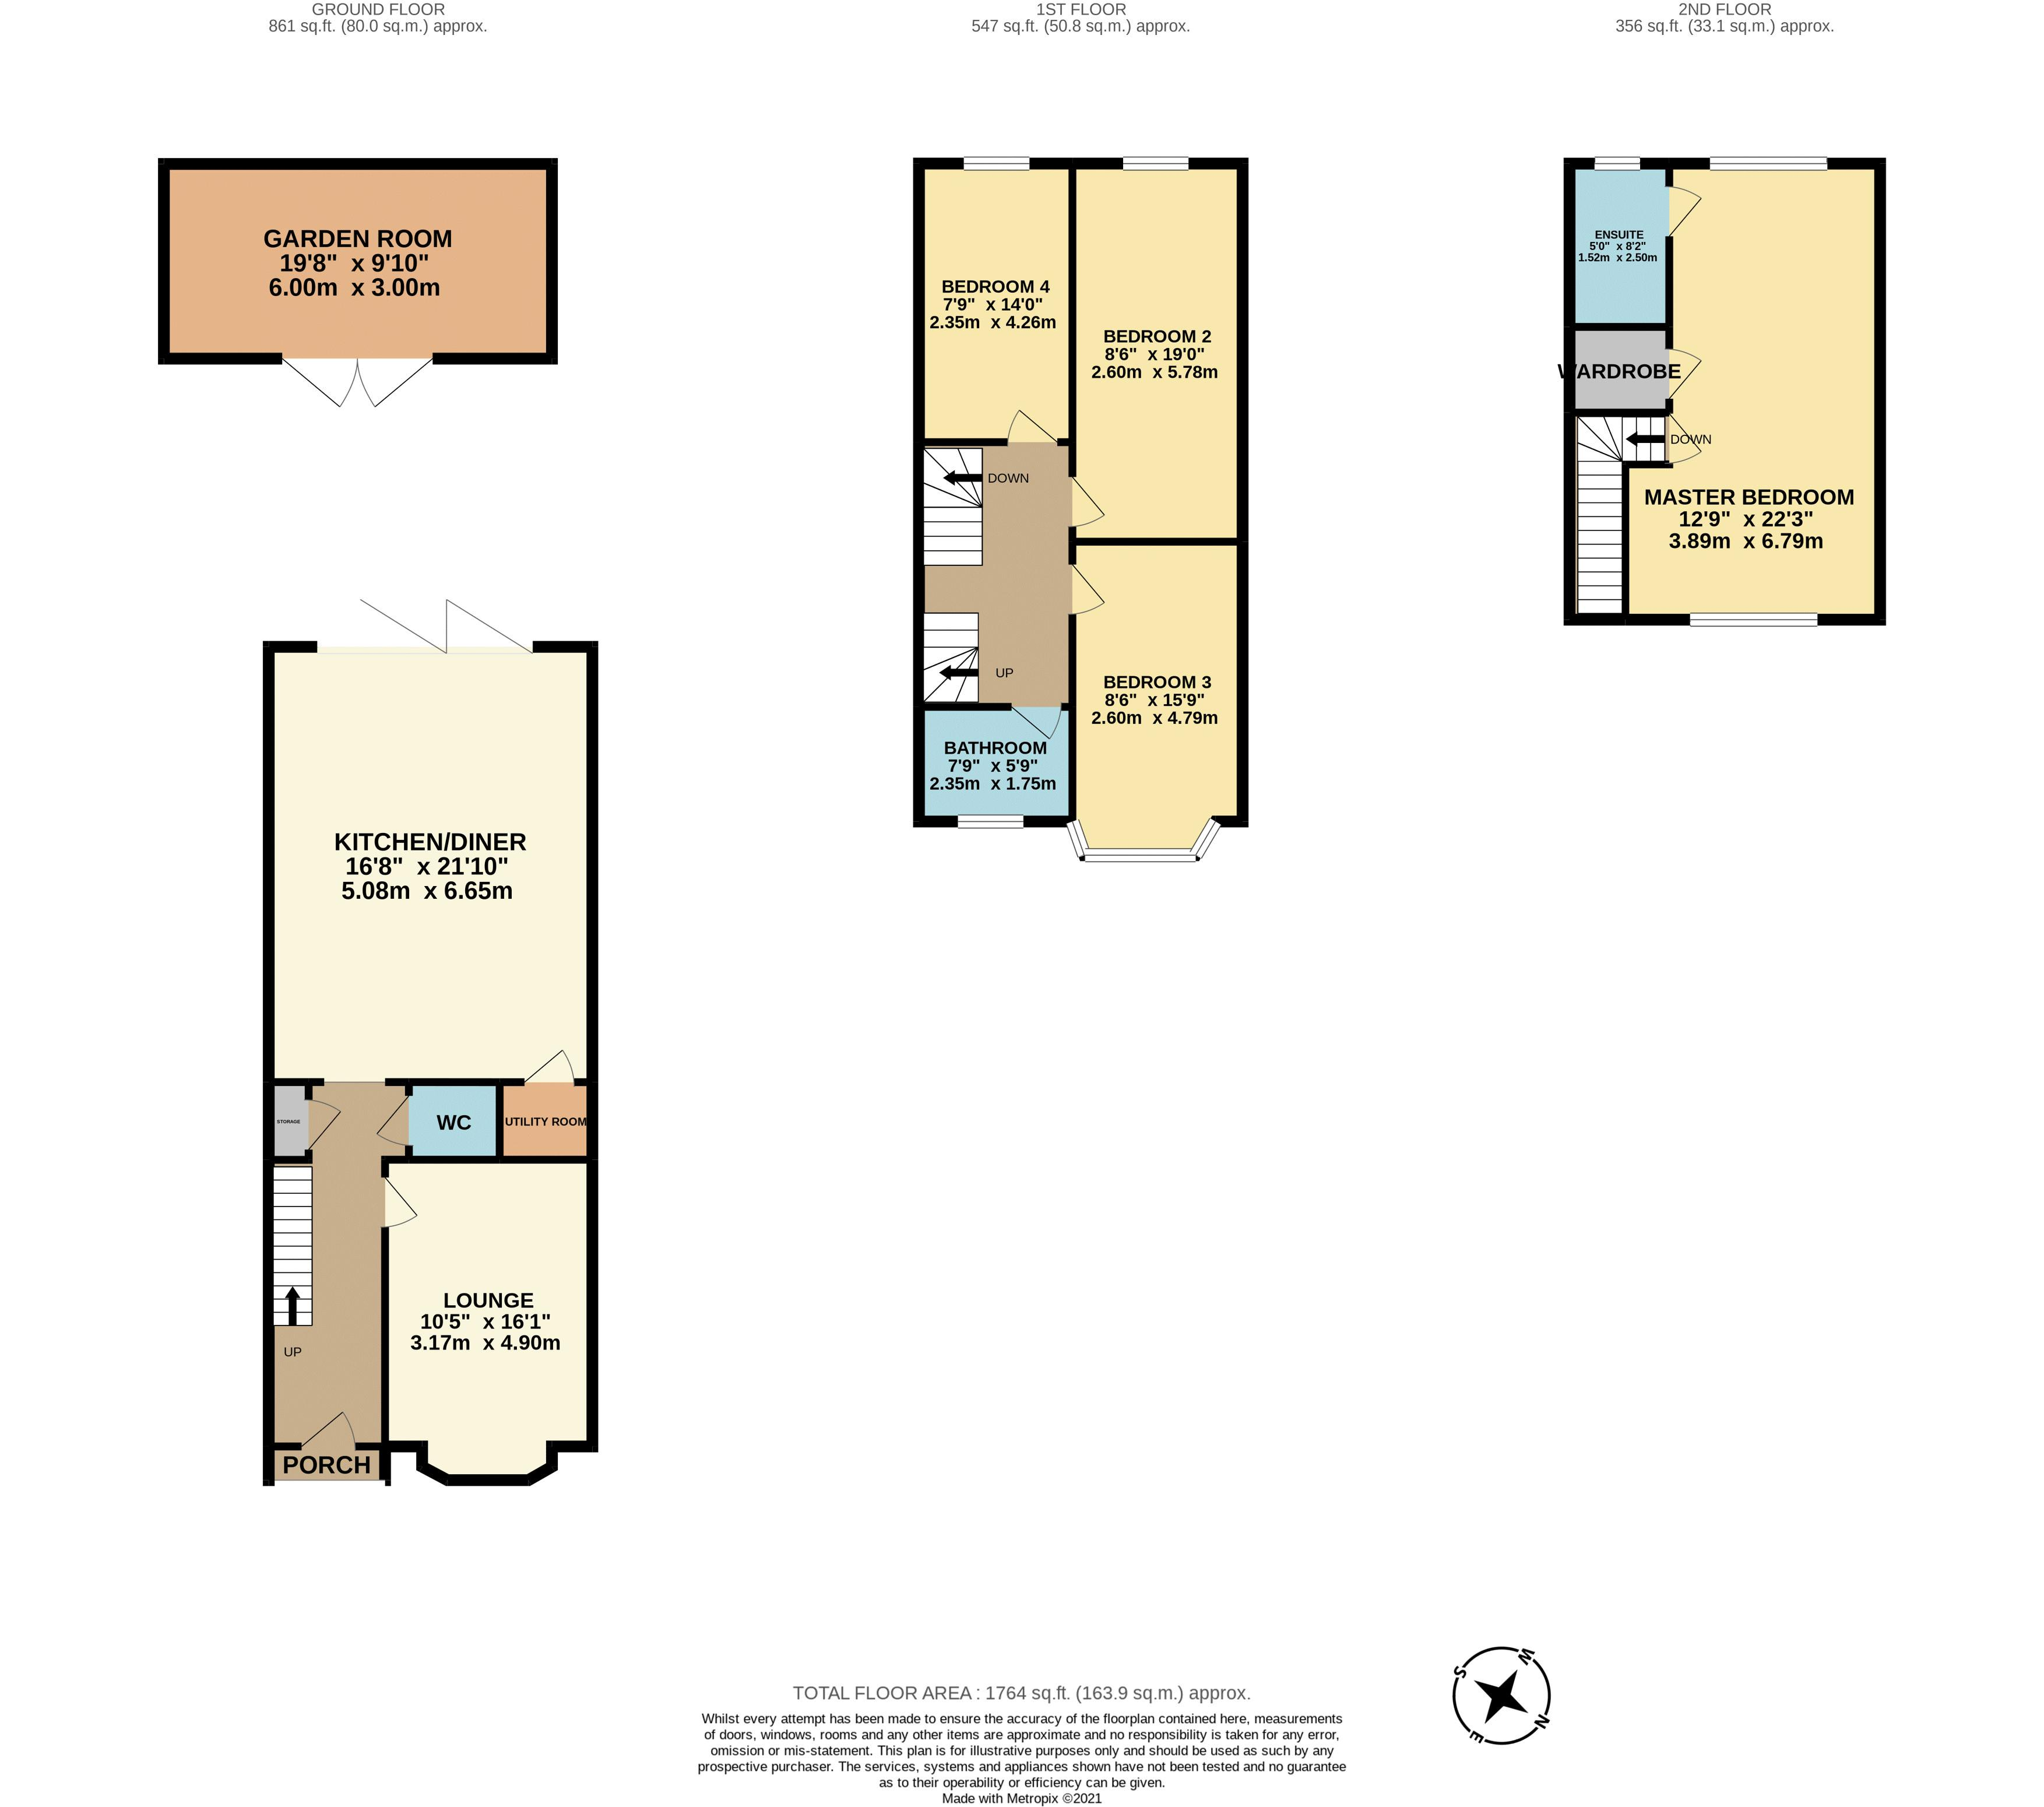 4 bedroom detached house For Sale in Carshalton Beeches - floorplan 1.